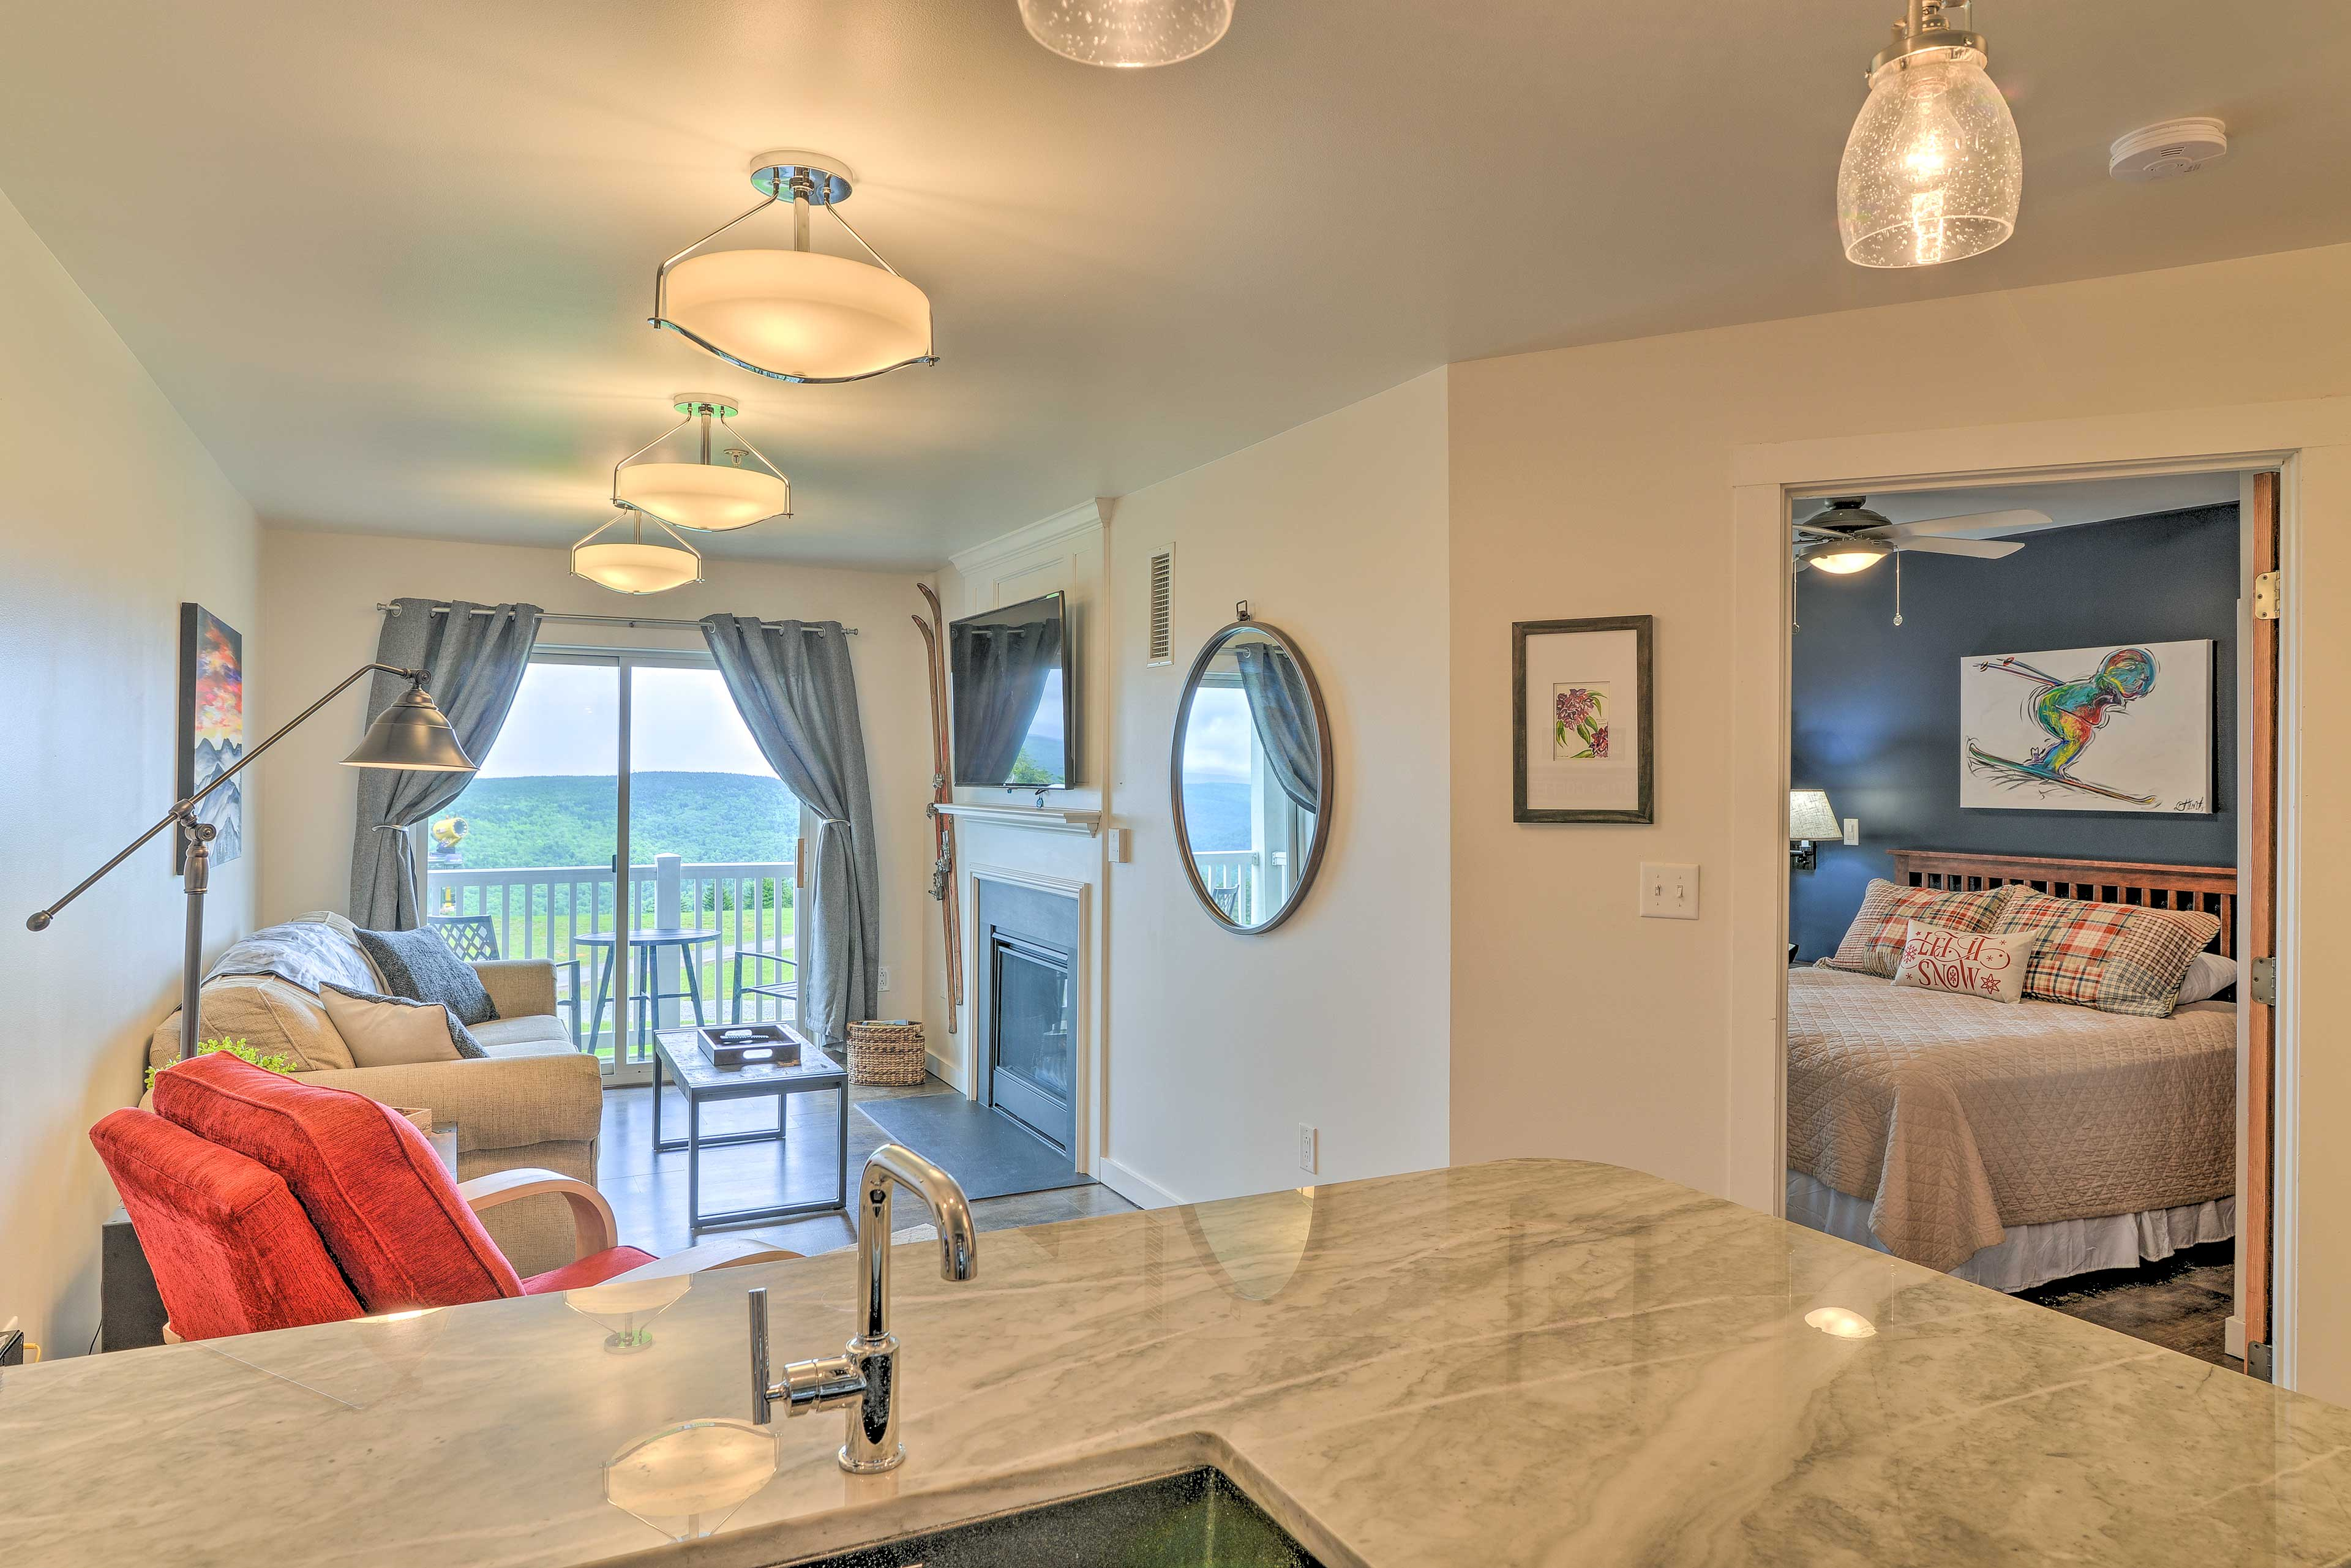 This cozy 1-bed, 1-bath condo is perfect for a group of 6.